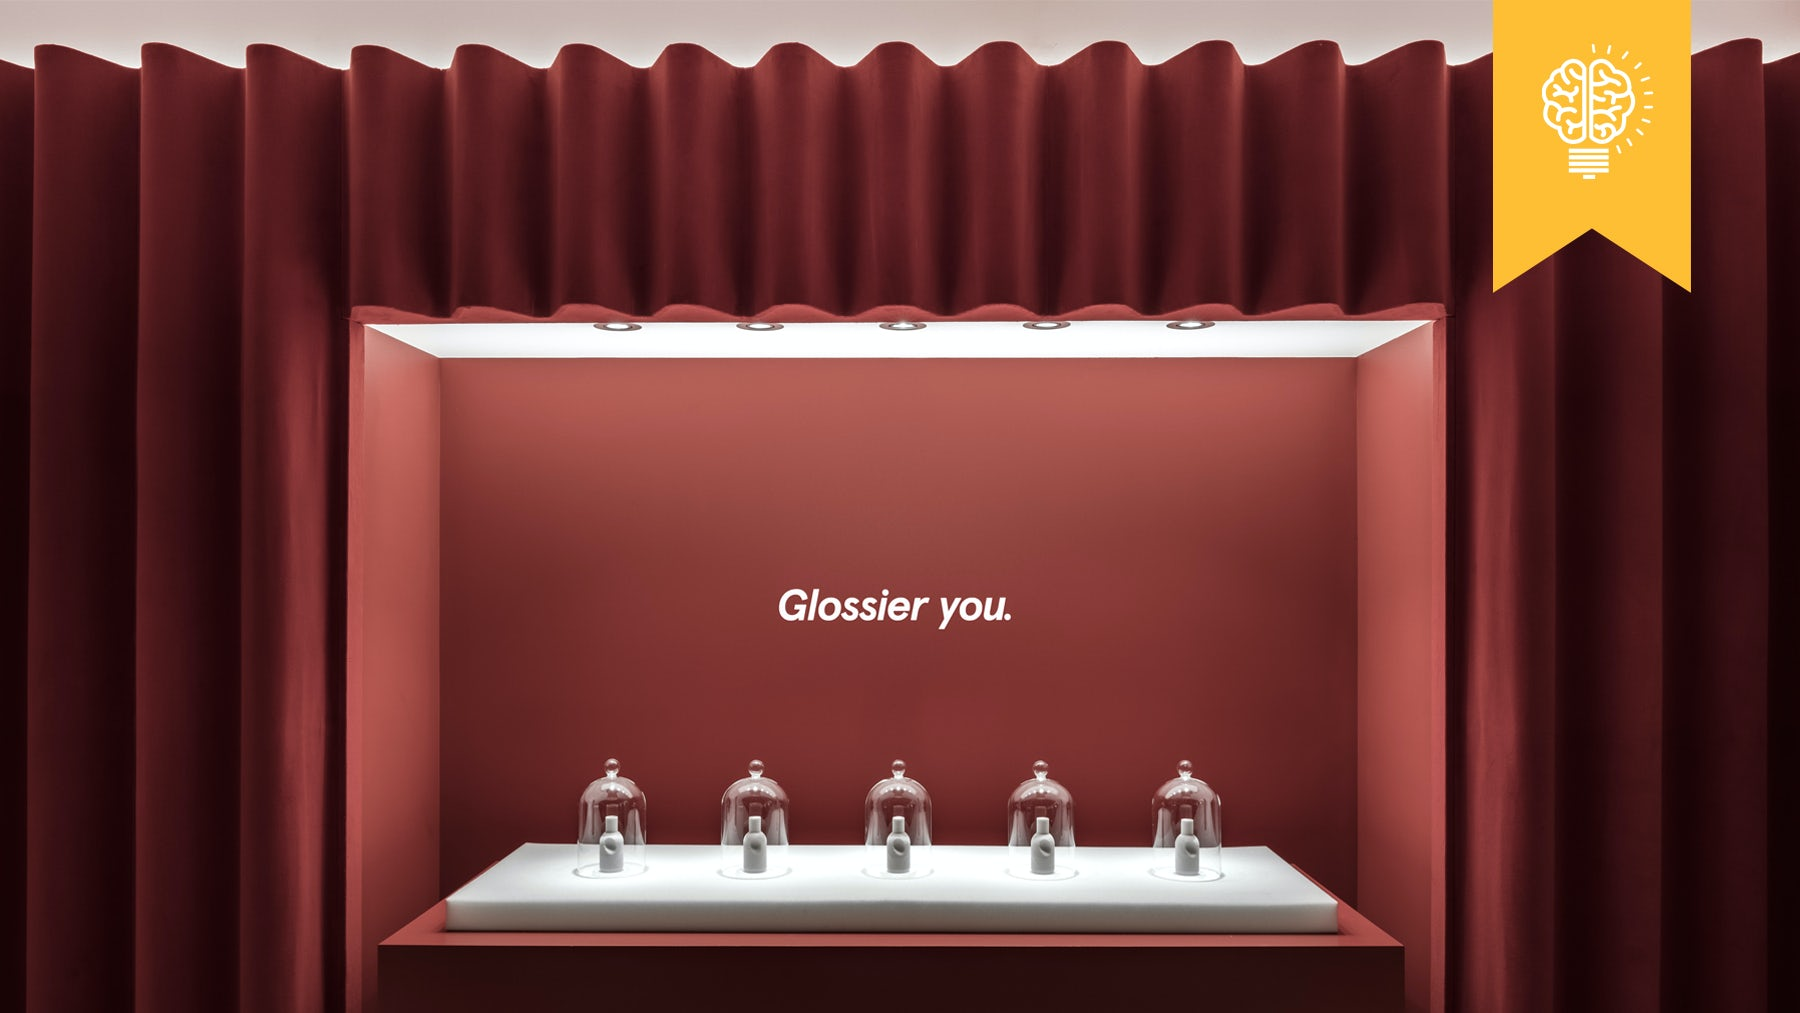 The Glossier You pop-up | Source: Courtesy